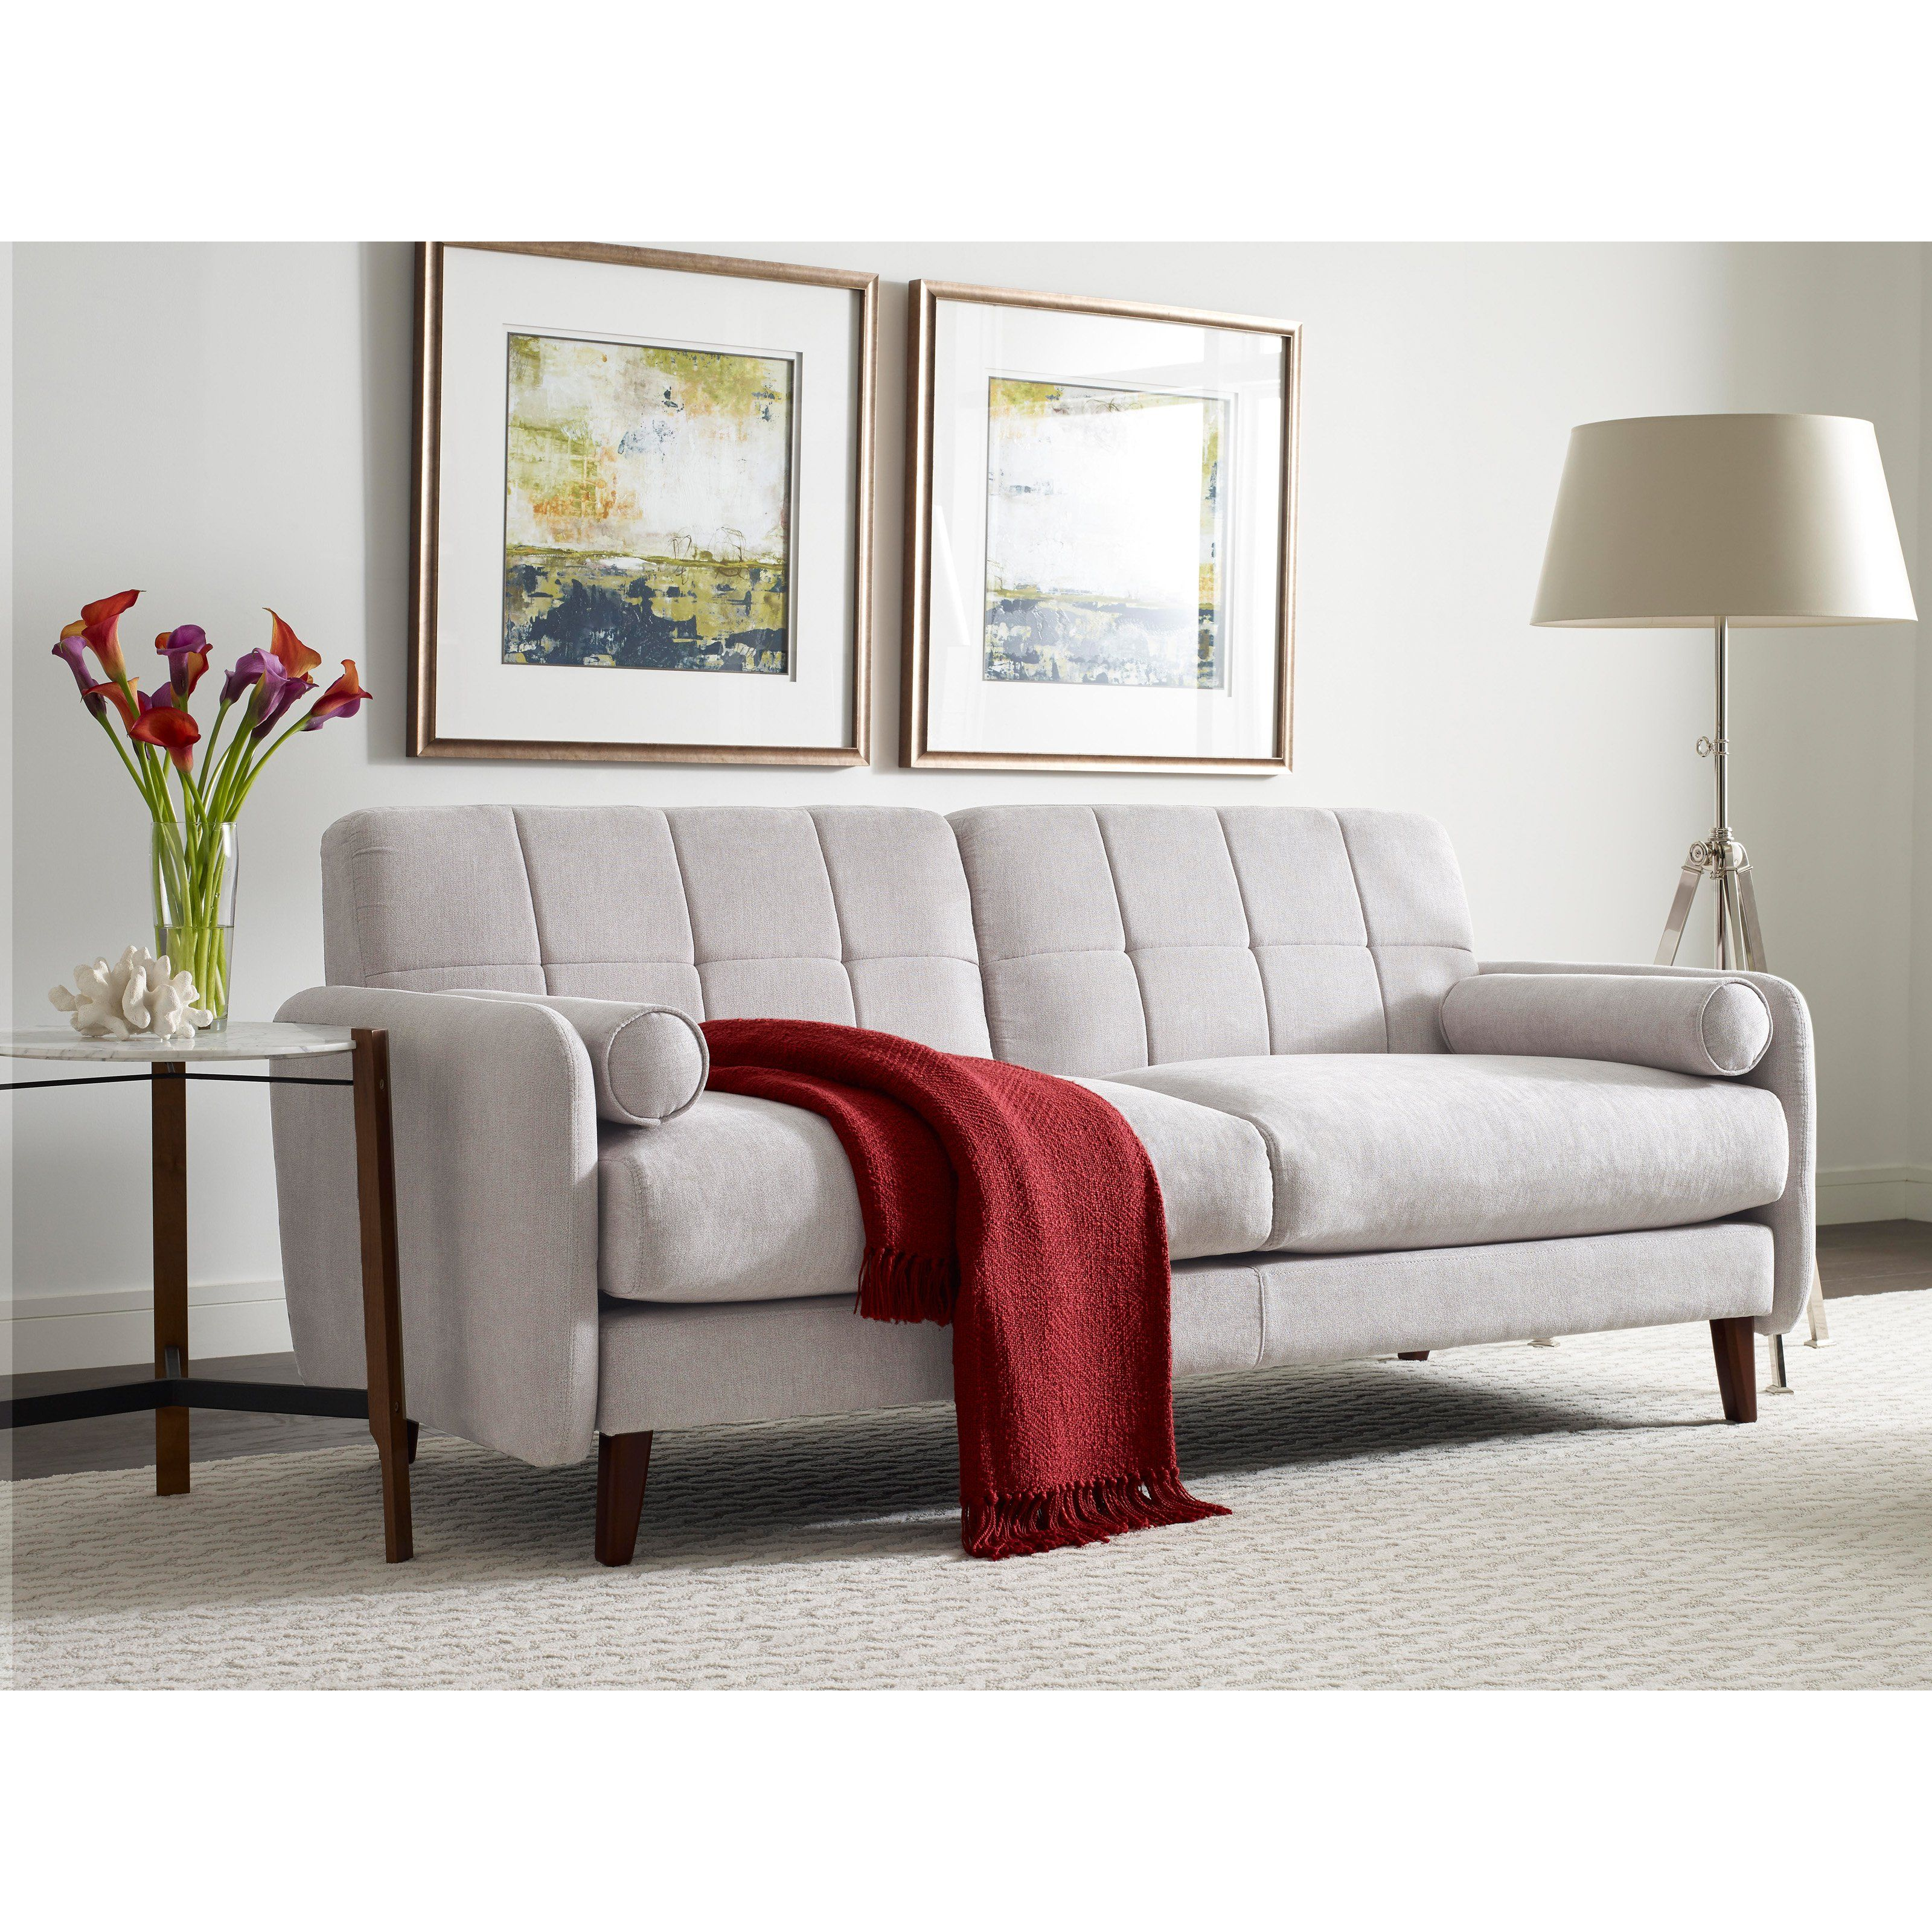 Serta Savanna Sofa | from hayneedle.com | Home stuff | Pinterest ...